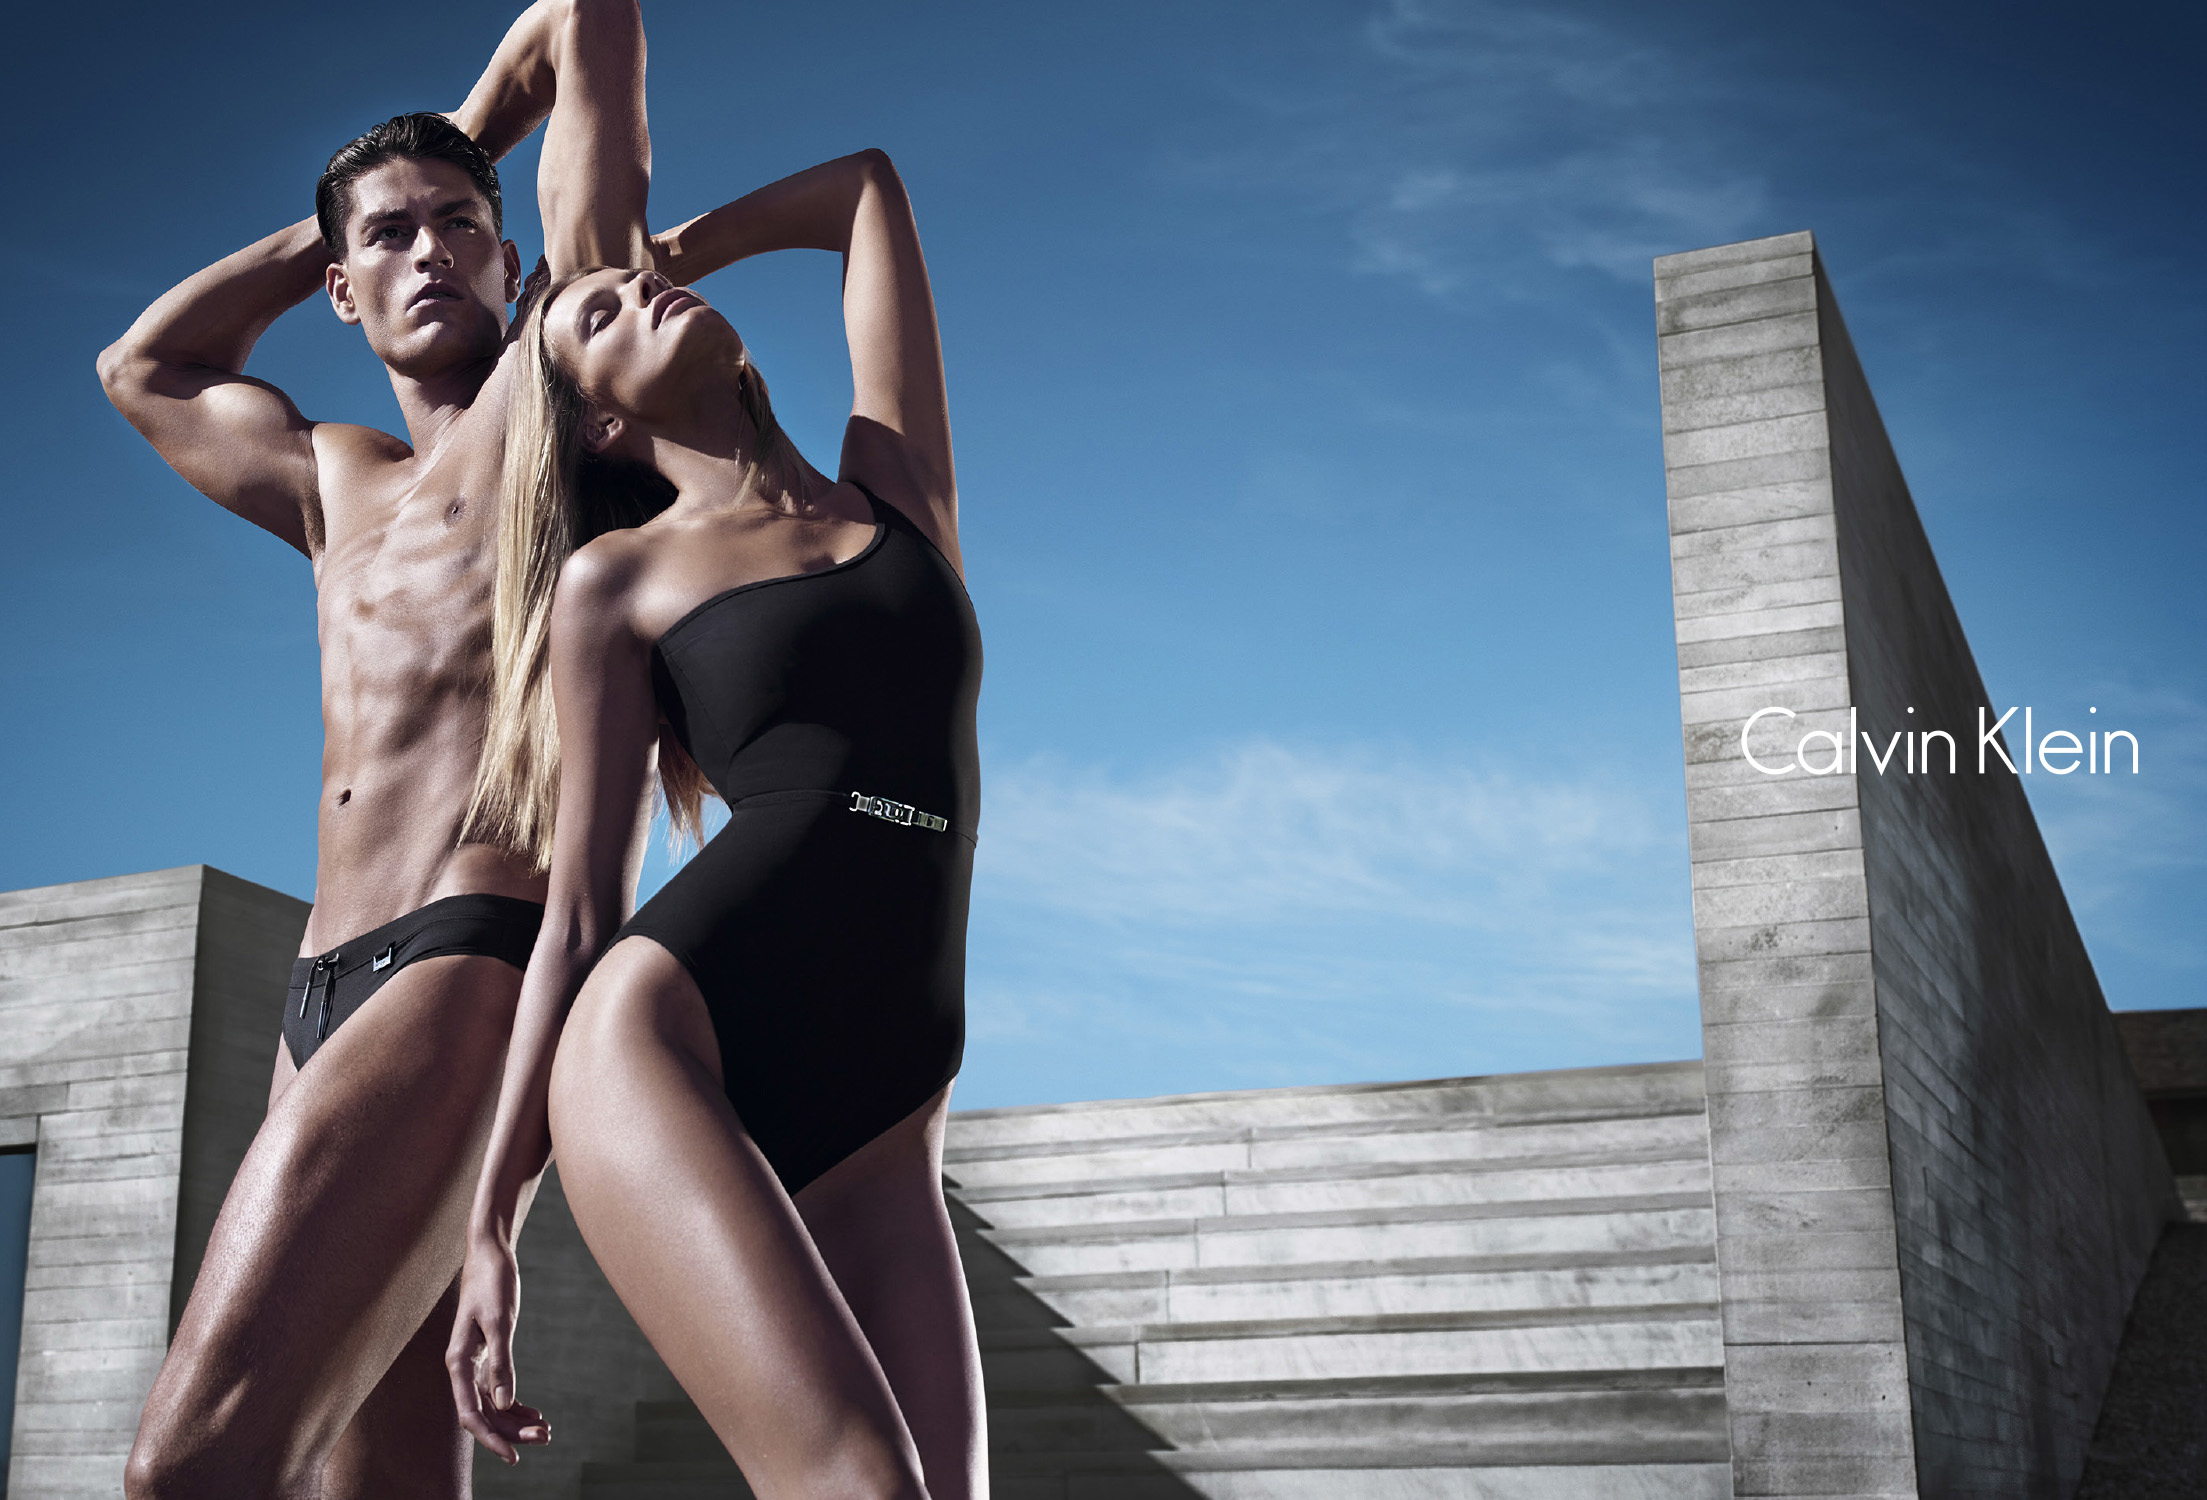 calvin-klein-white-label-swim-s14-m+w_ph_sorrenti,mario_sp17